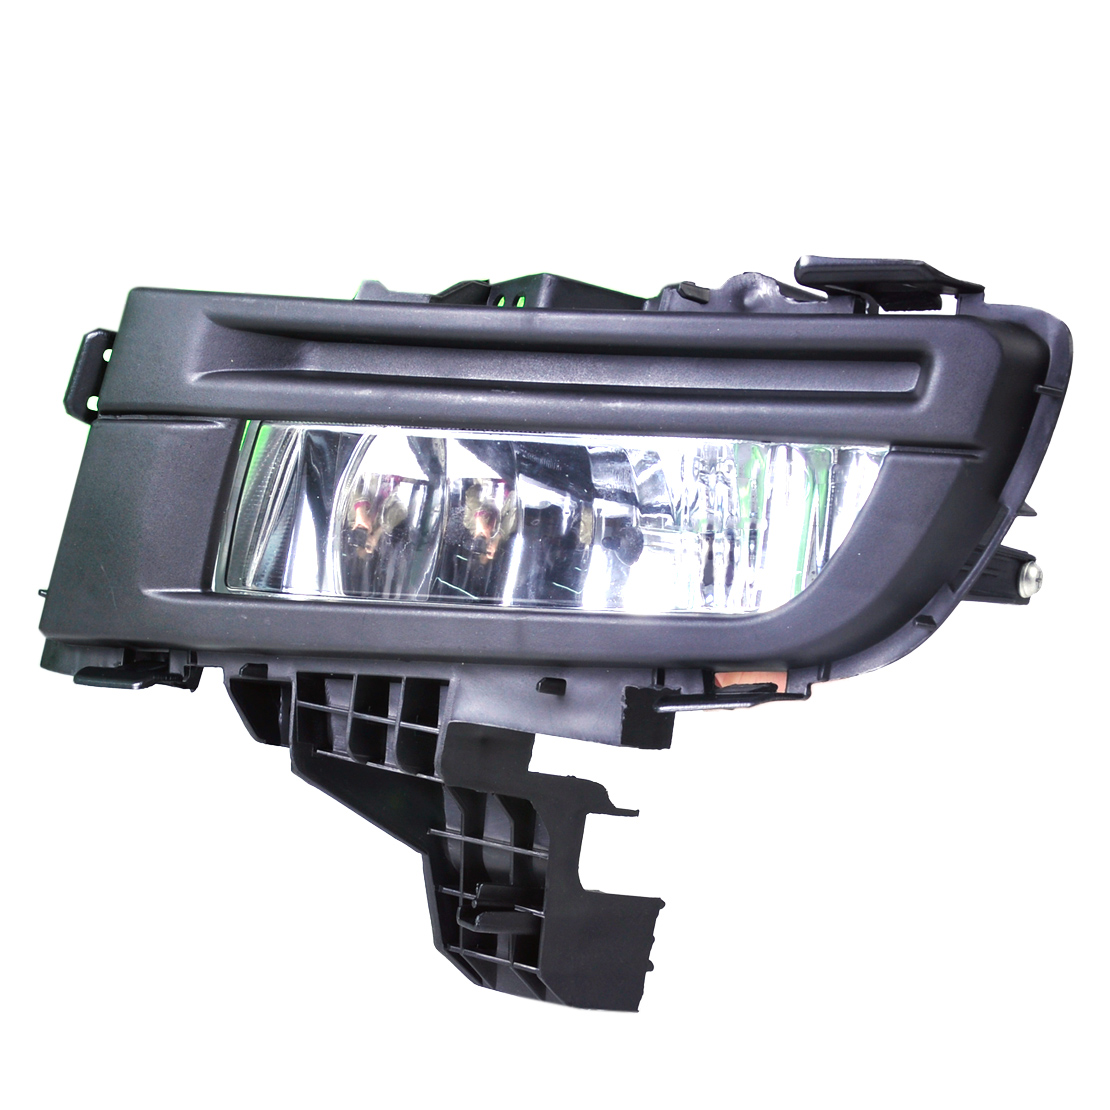 beler Car Light Accessories MA2592113 1Pc 12V 51W Front Left Side Fog Light Lamp 9006 for Mazda 3 2007 2008 2009 beler new high quality abs plastic new front left fog light lamp 9006 12v 51w replacement ma2592113 for mazda 3 2007 2008 2009